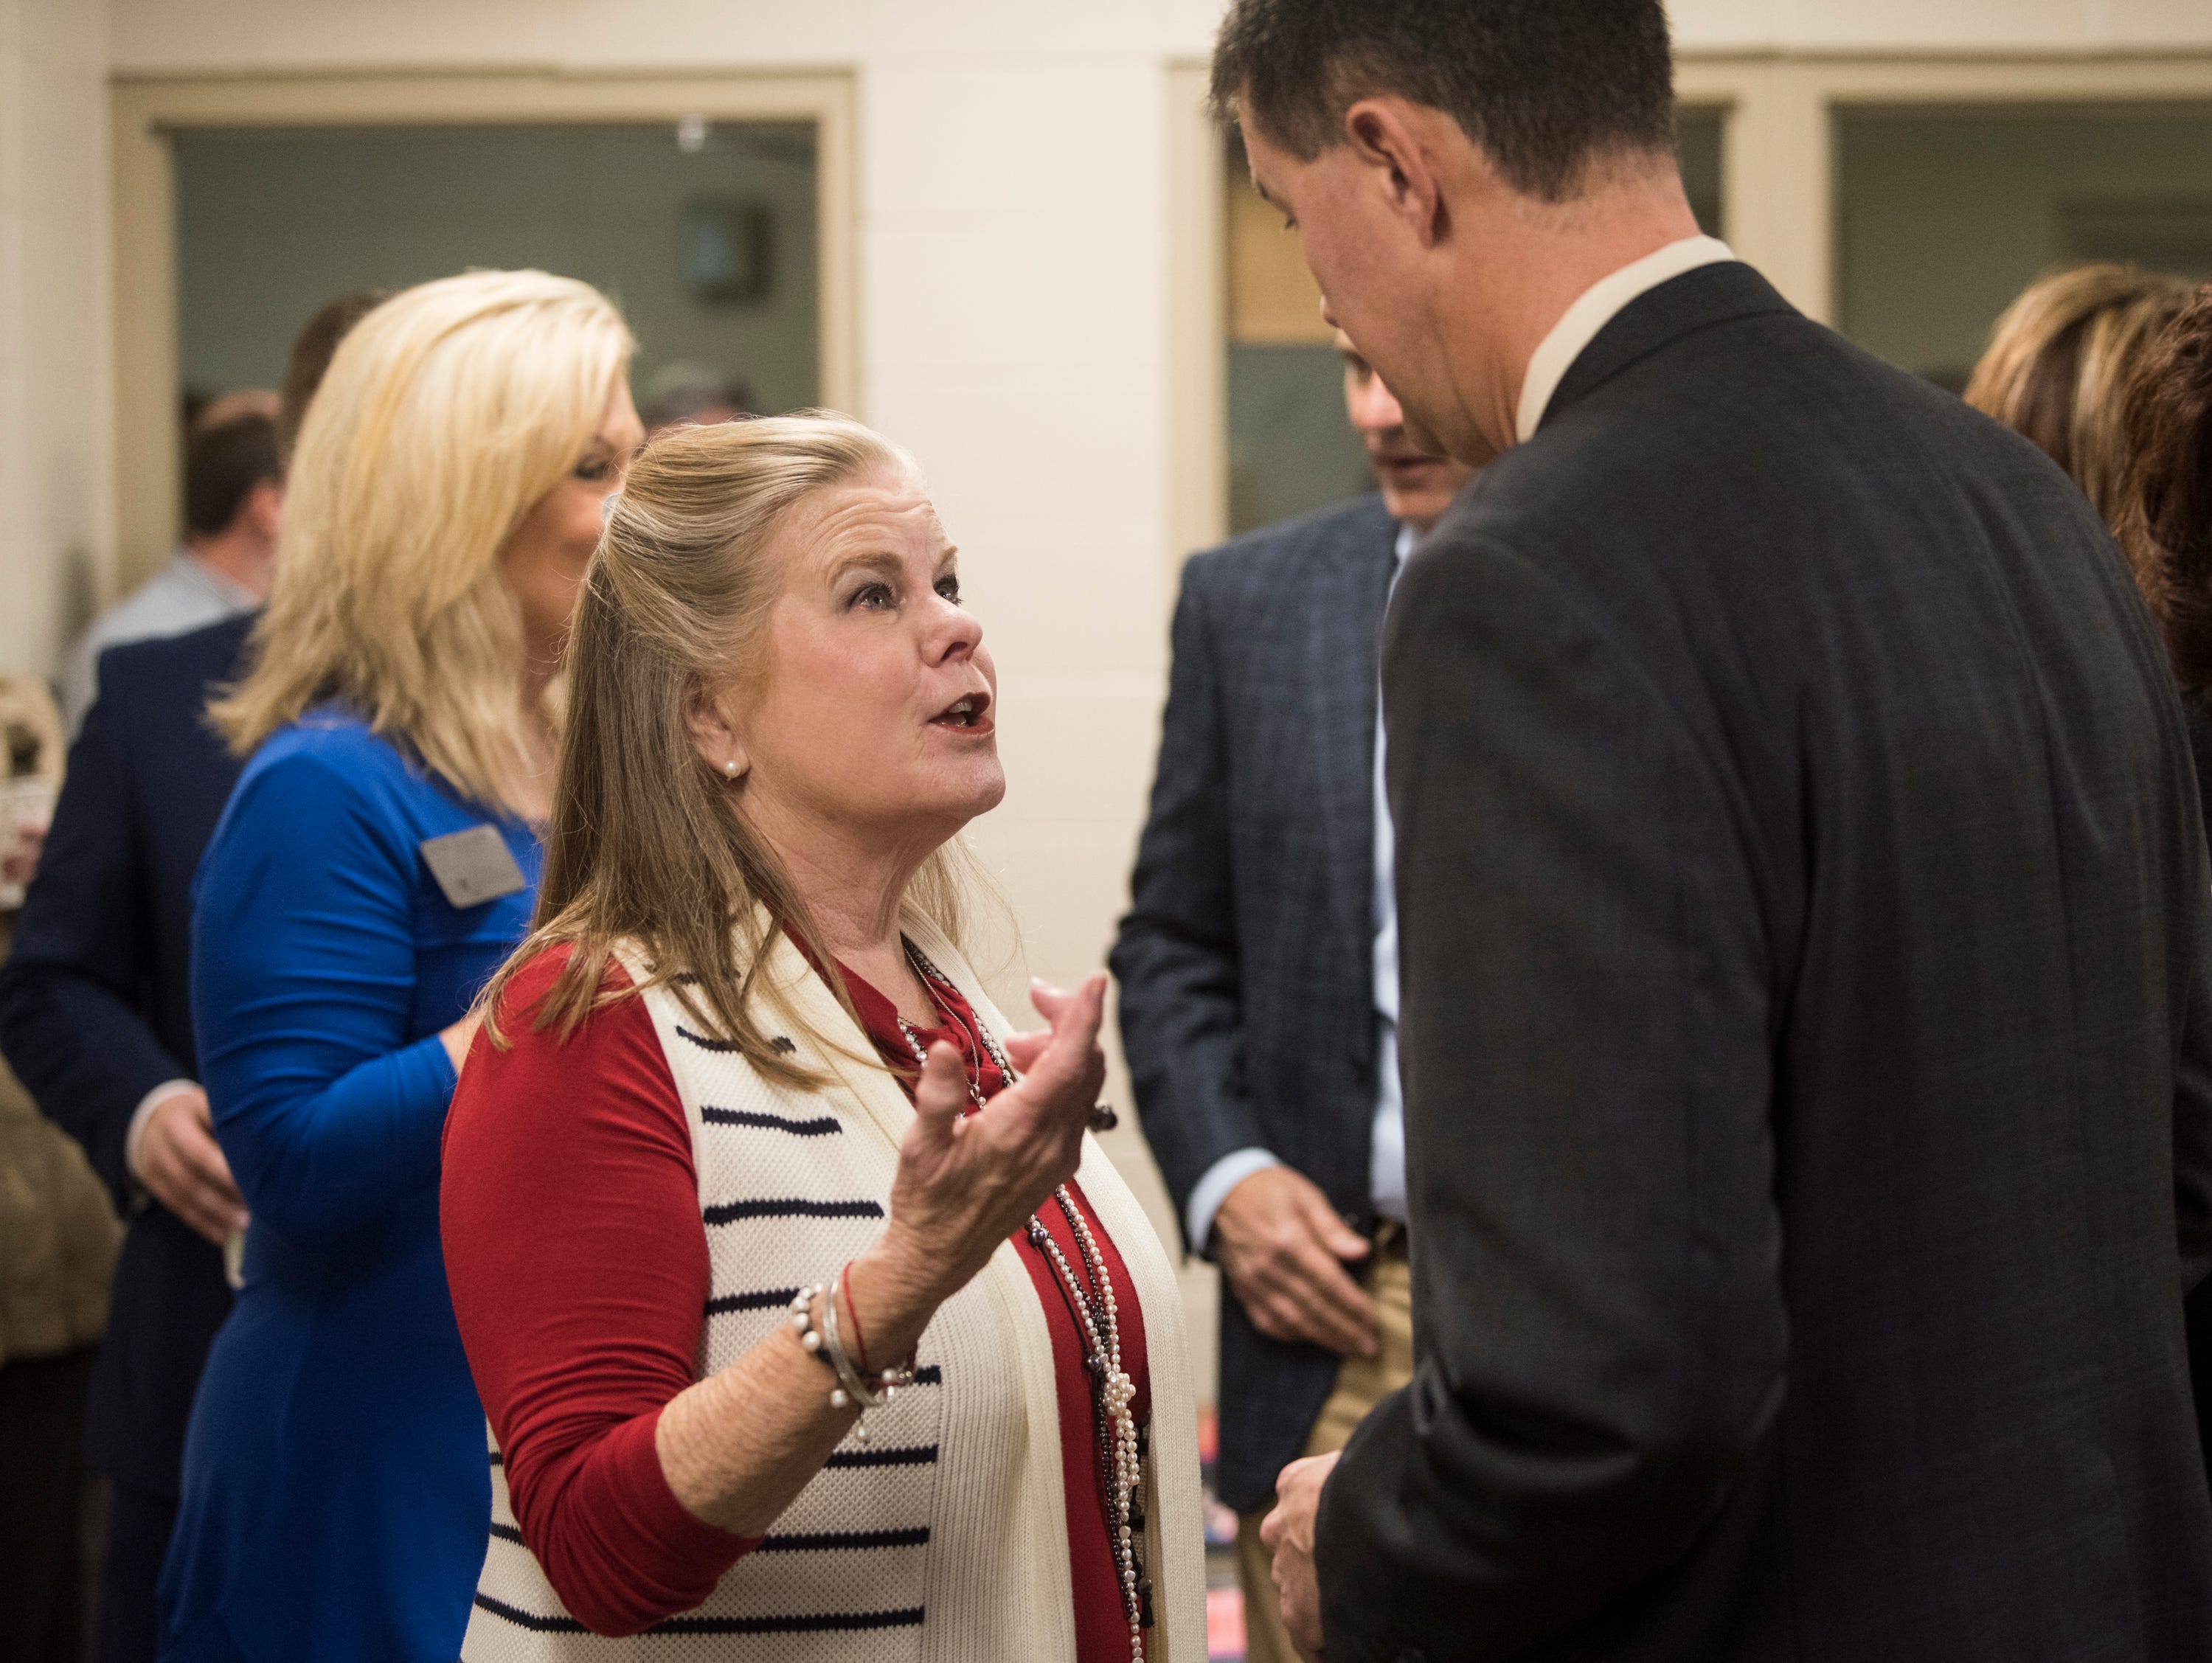 Former Alabama Supreme Court justice Sue Cobb speaks with Alabama Secretary of State John Merrill at the Ingram State Technical College Draper instructional service center in Elmore, Ala., on Thursday, Feb. 21, 2019.